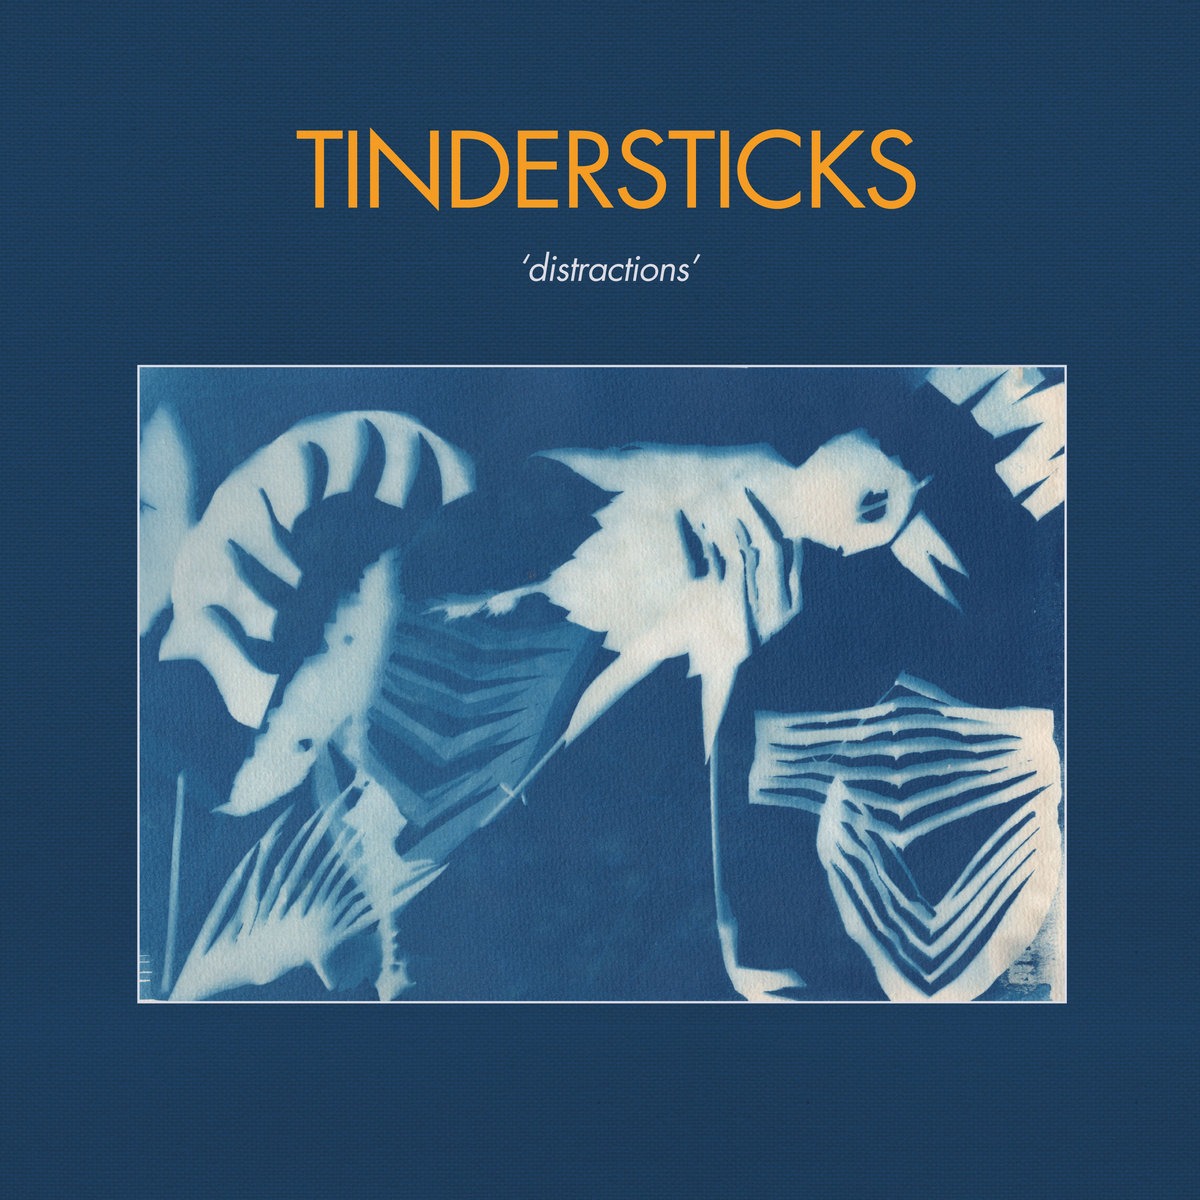 Tindersticks cover